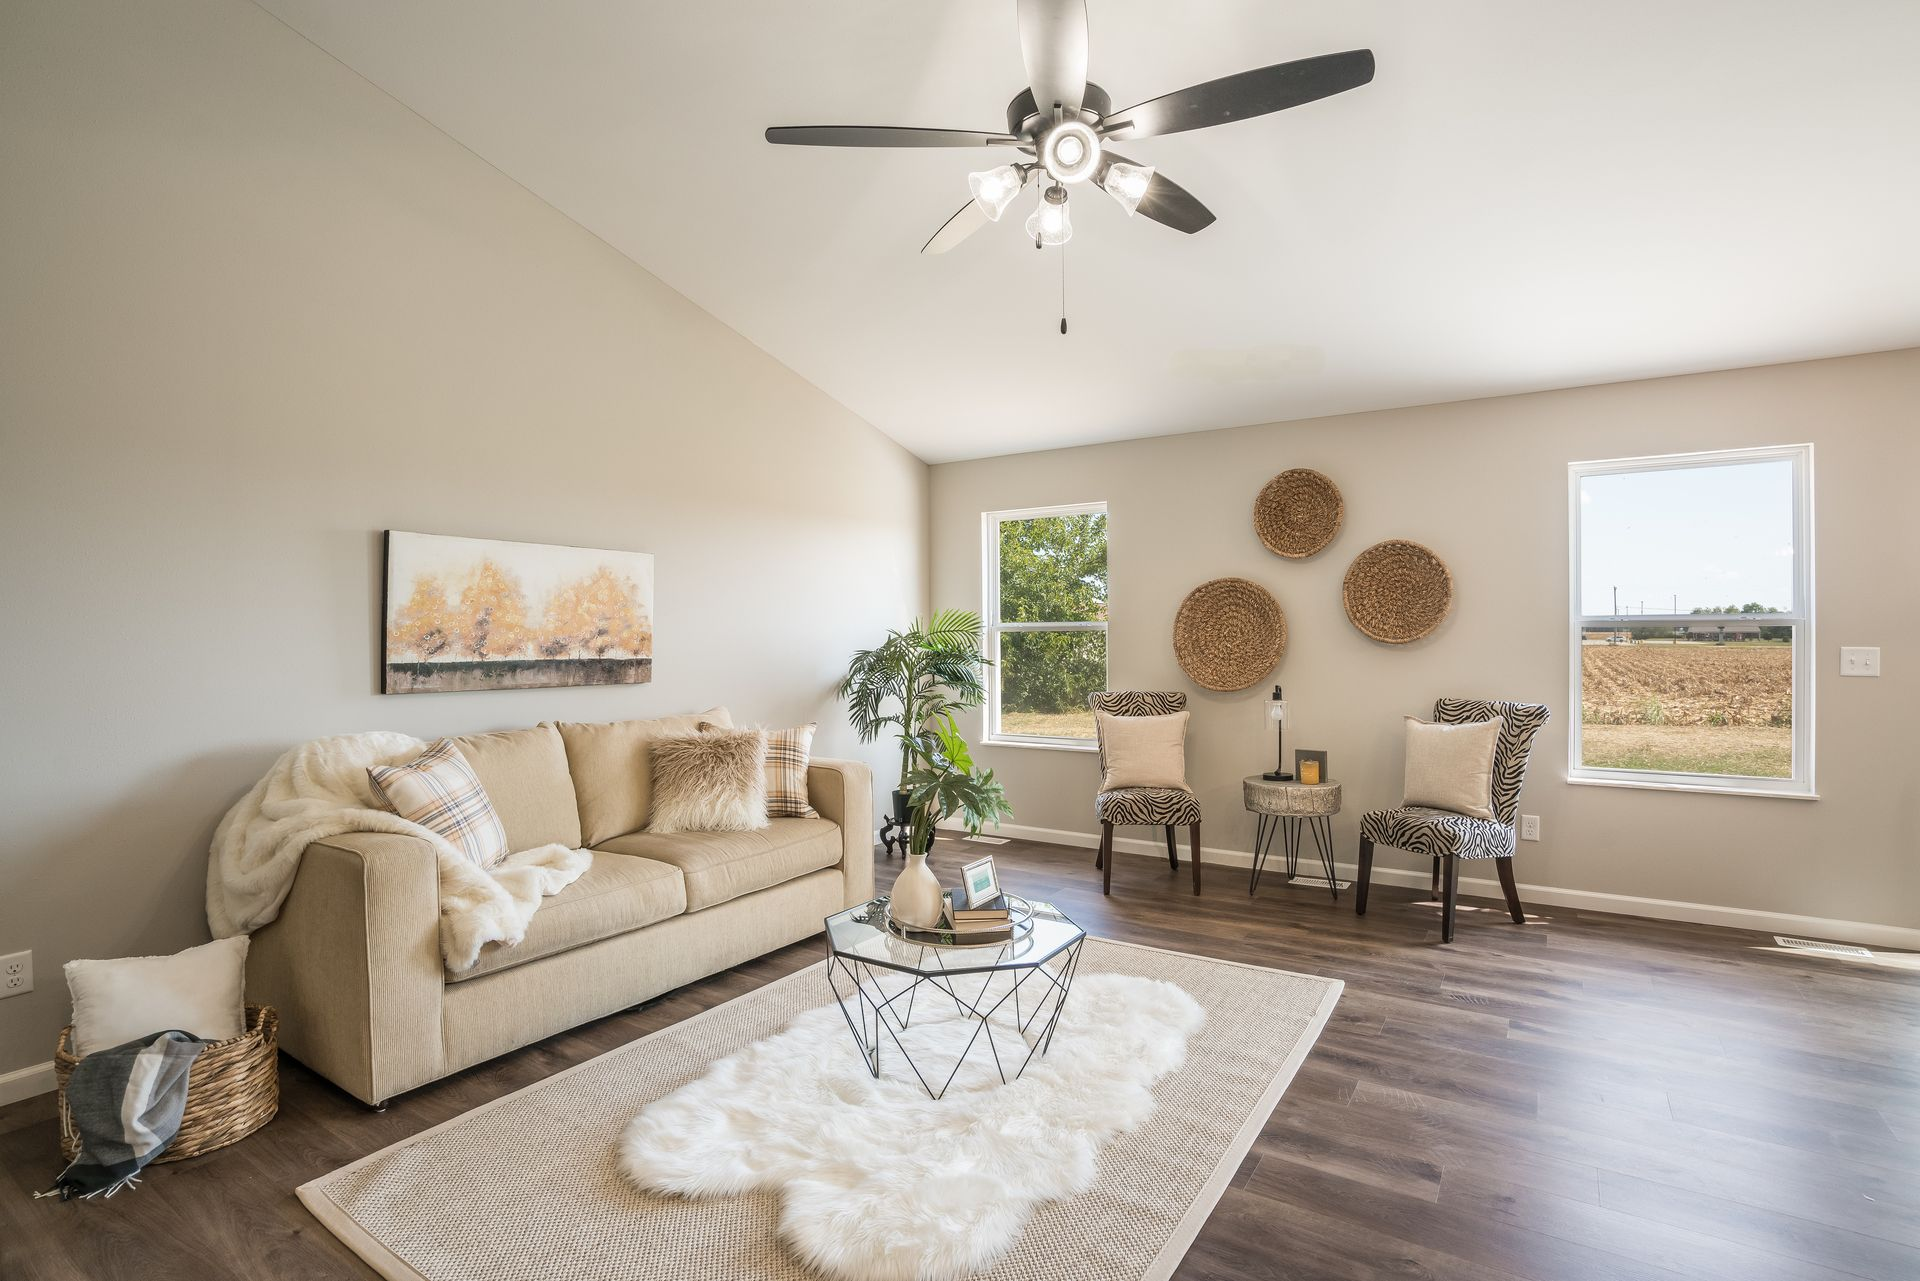 Living Area featured in the Calais II By C.A. Jones, Inc.  in St. Louis, IL